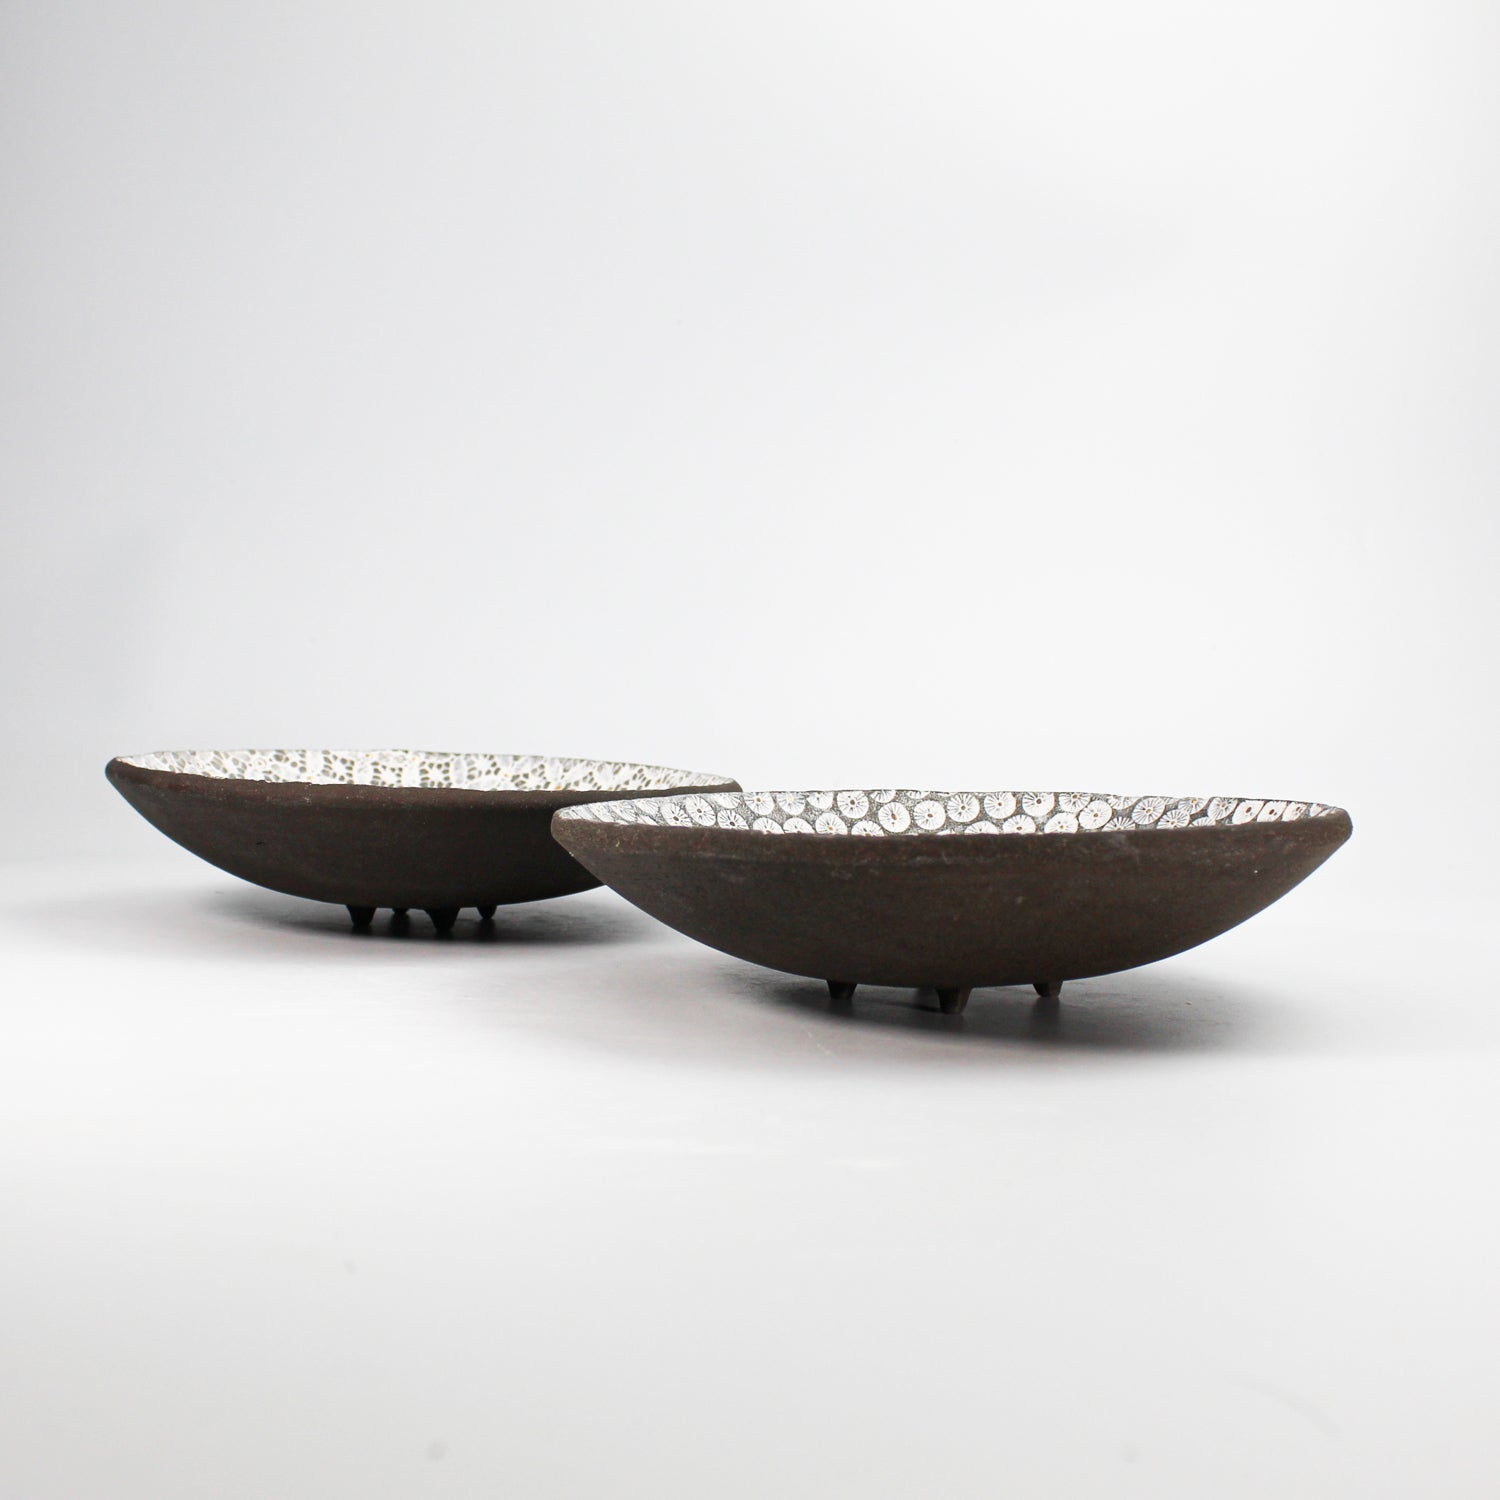 Side view of two dark brown pottery bowls with white glazed pattern